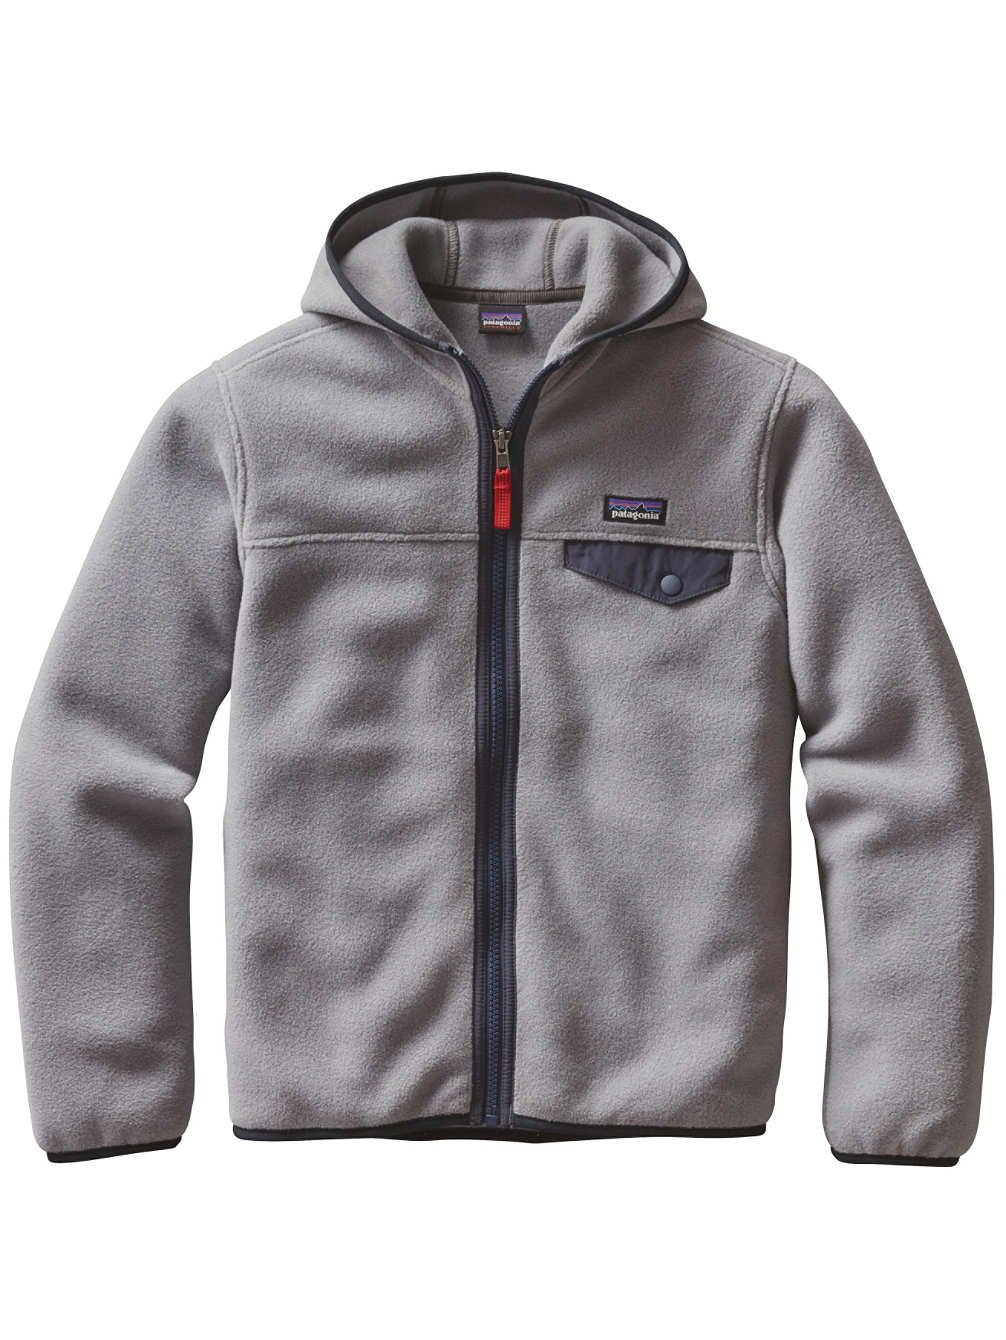 Patagonia Boys' Lightweight Synchilla Snap-T Fleece Hoodie (M, Feather Grey) by Patagonia